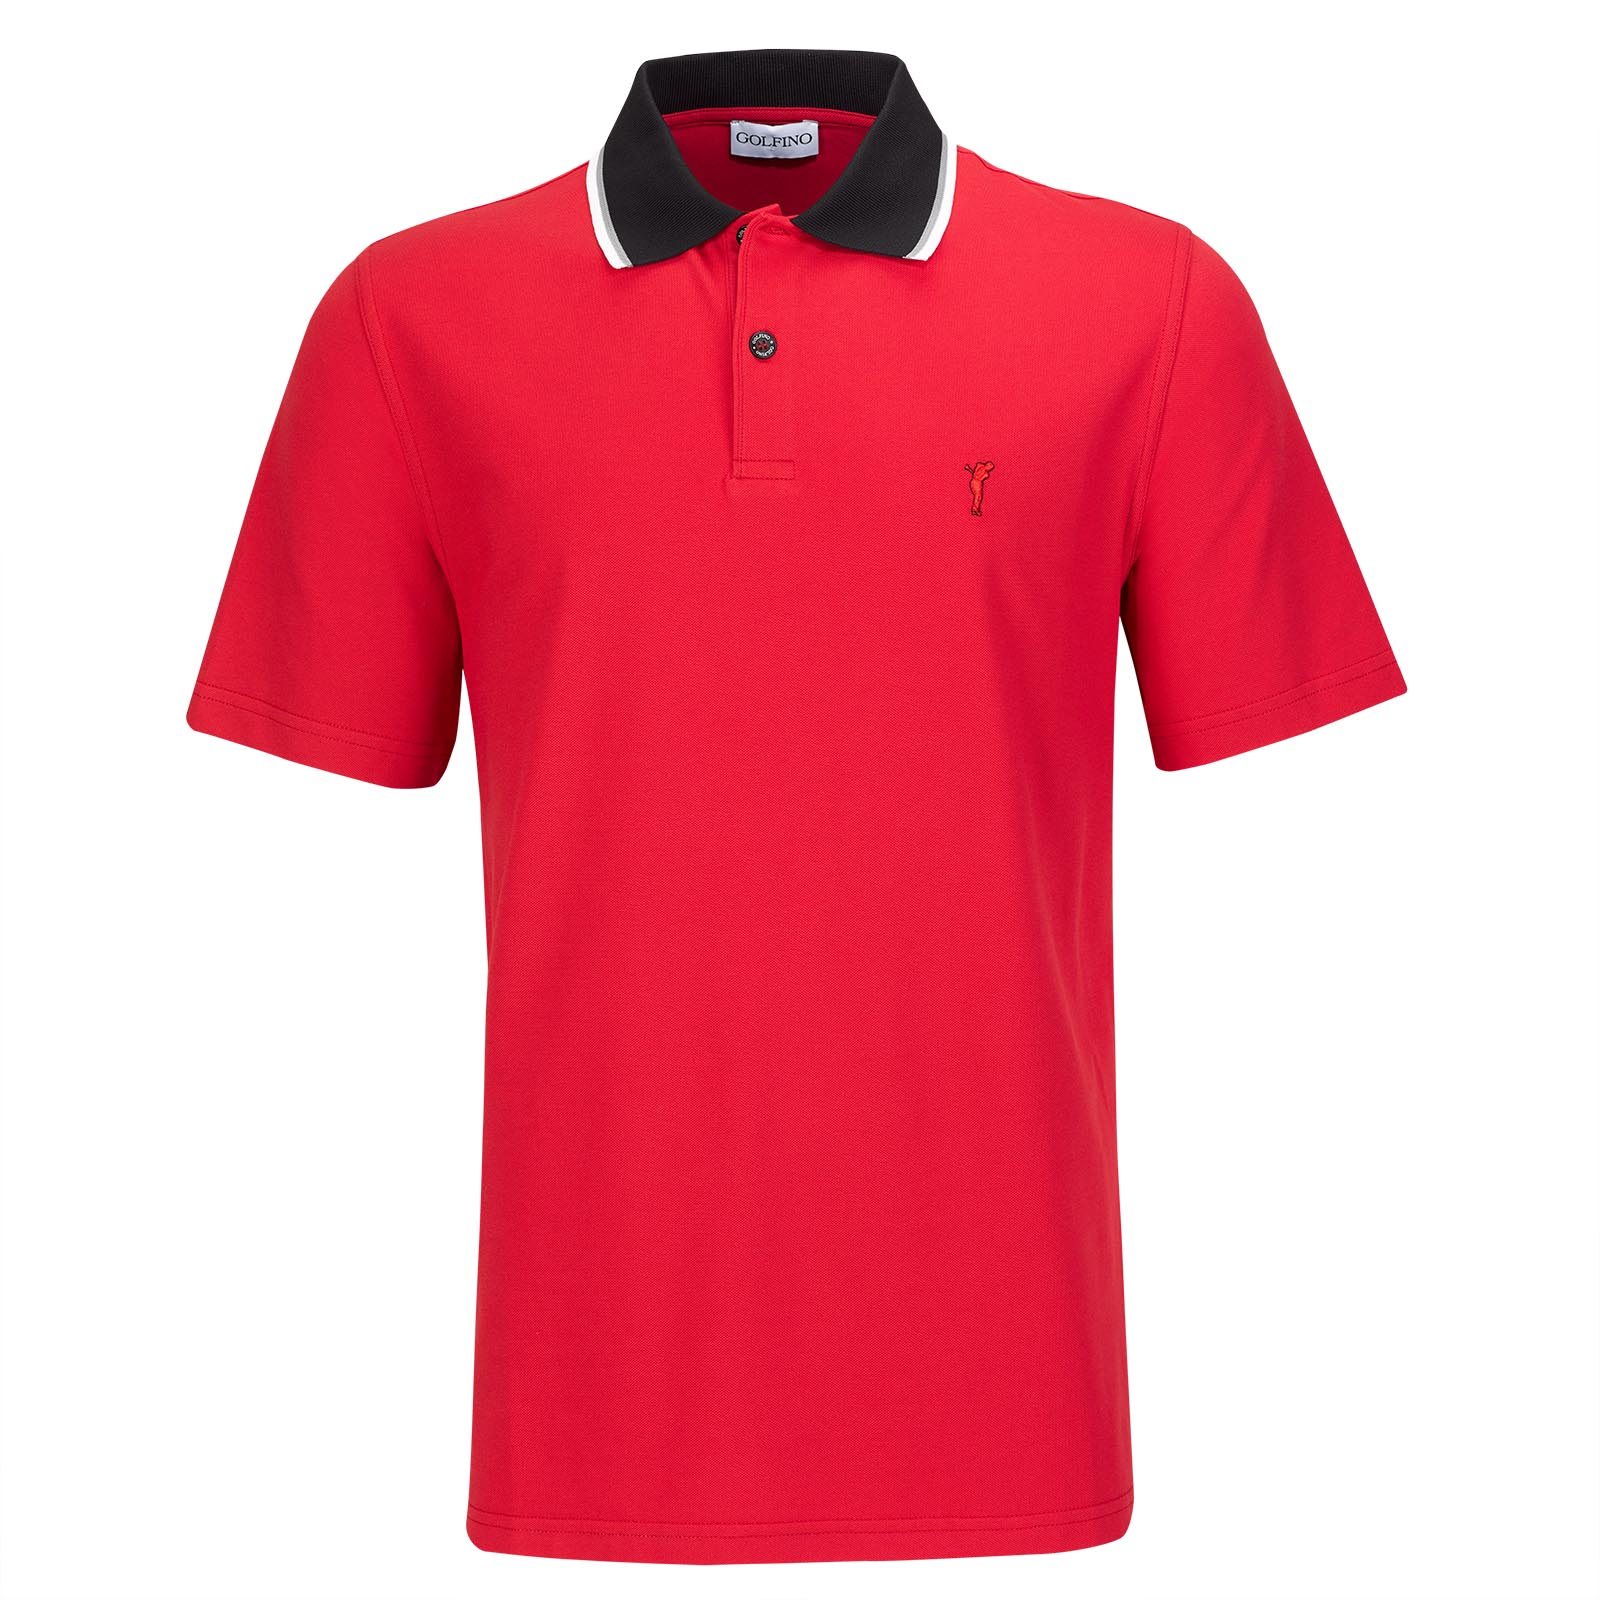 Modern men's short-sleeved polo shirt